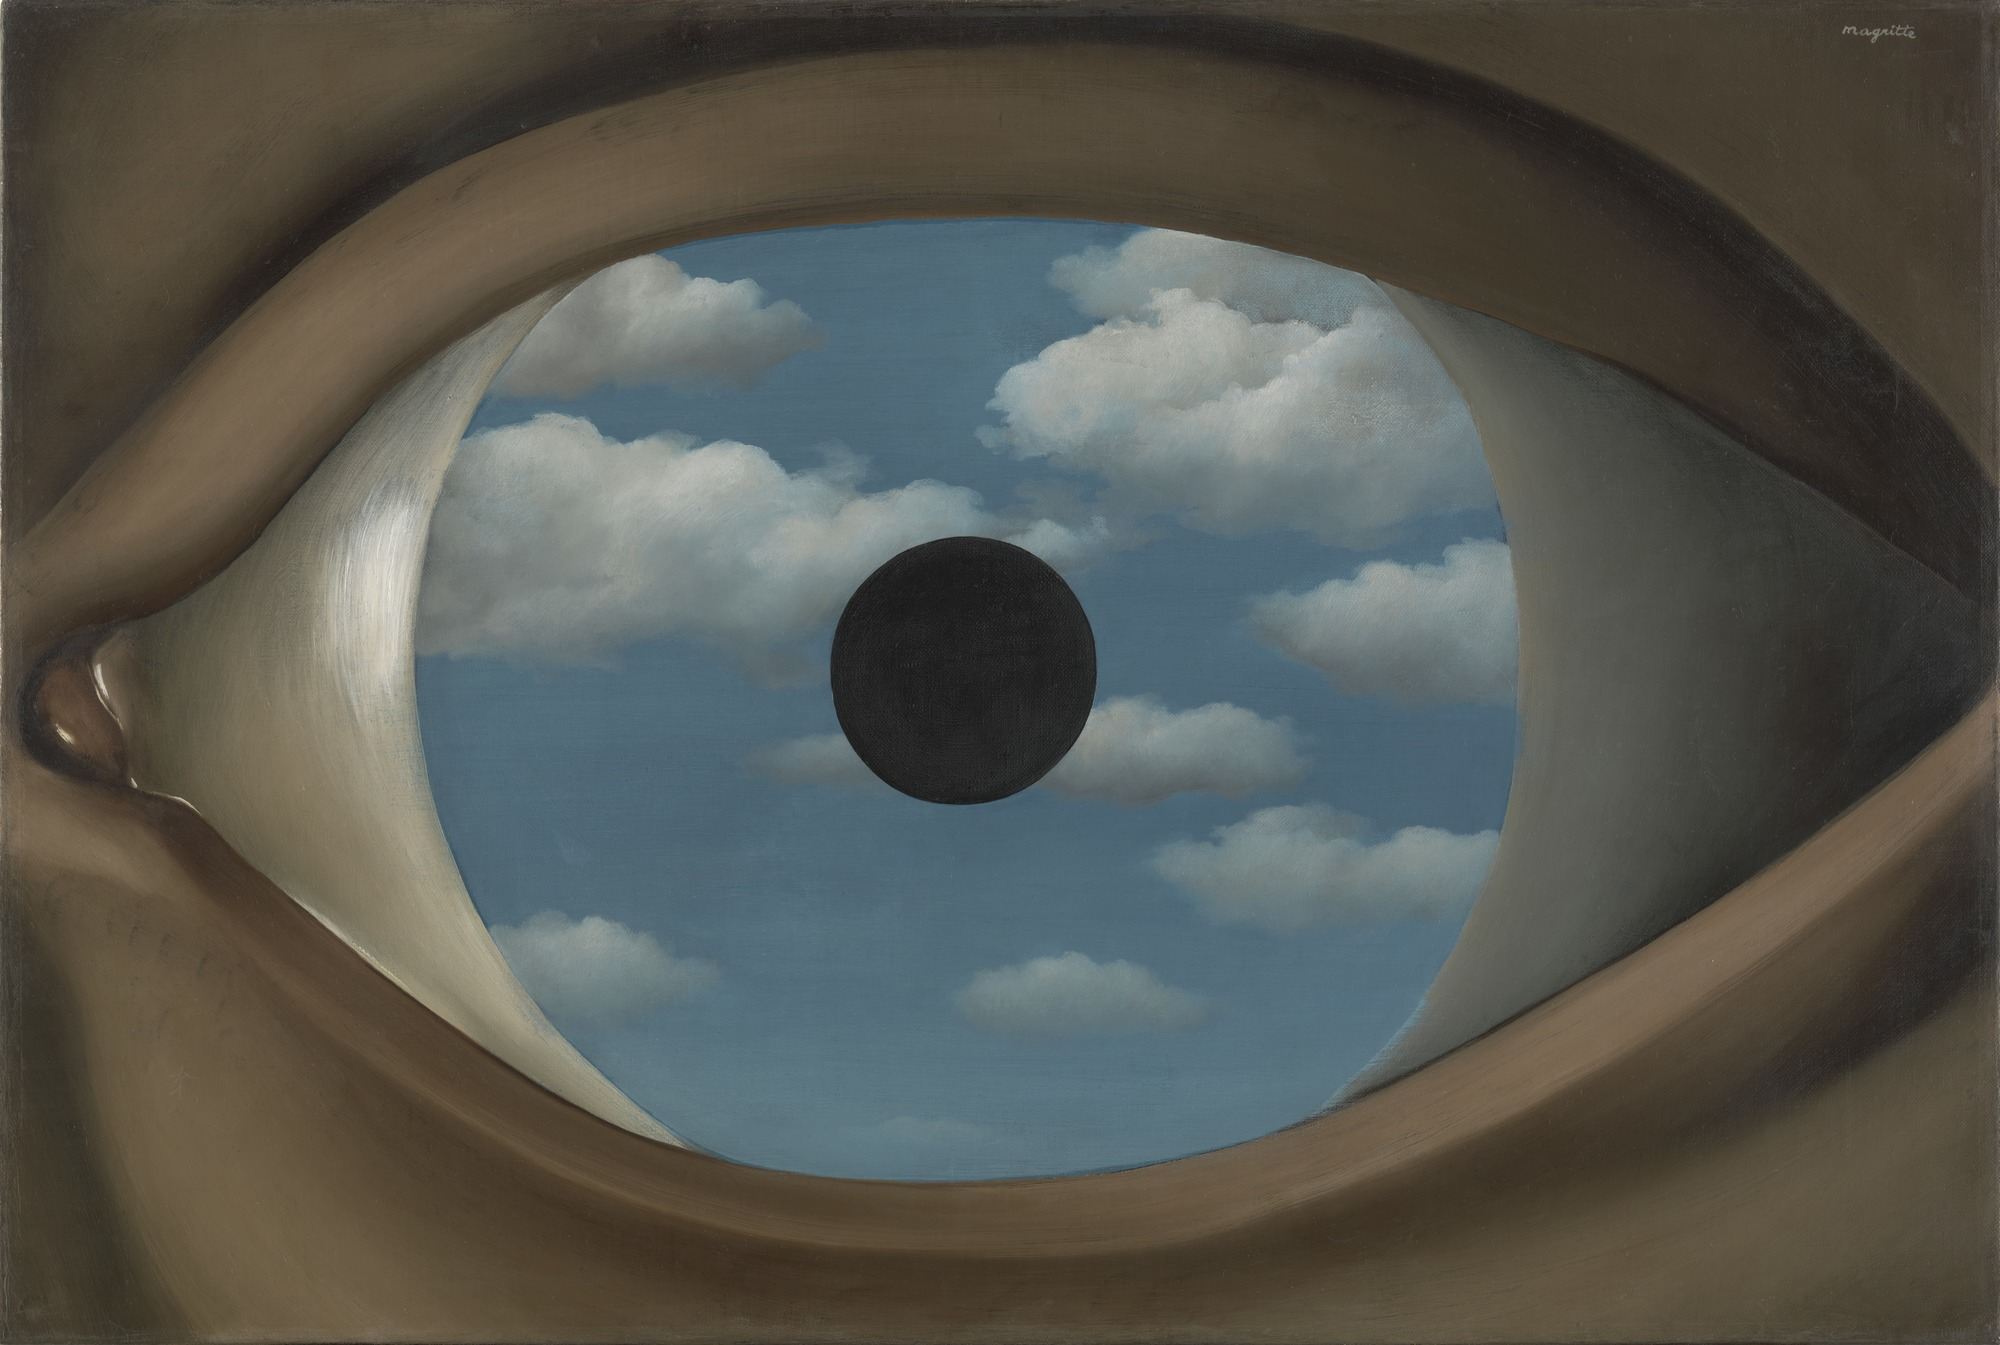 rene_magritte_the_false_mirror_moma.jpg